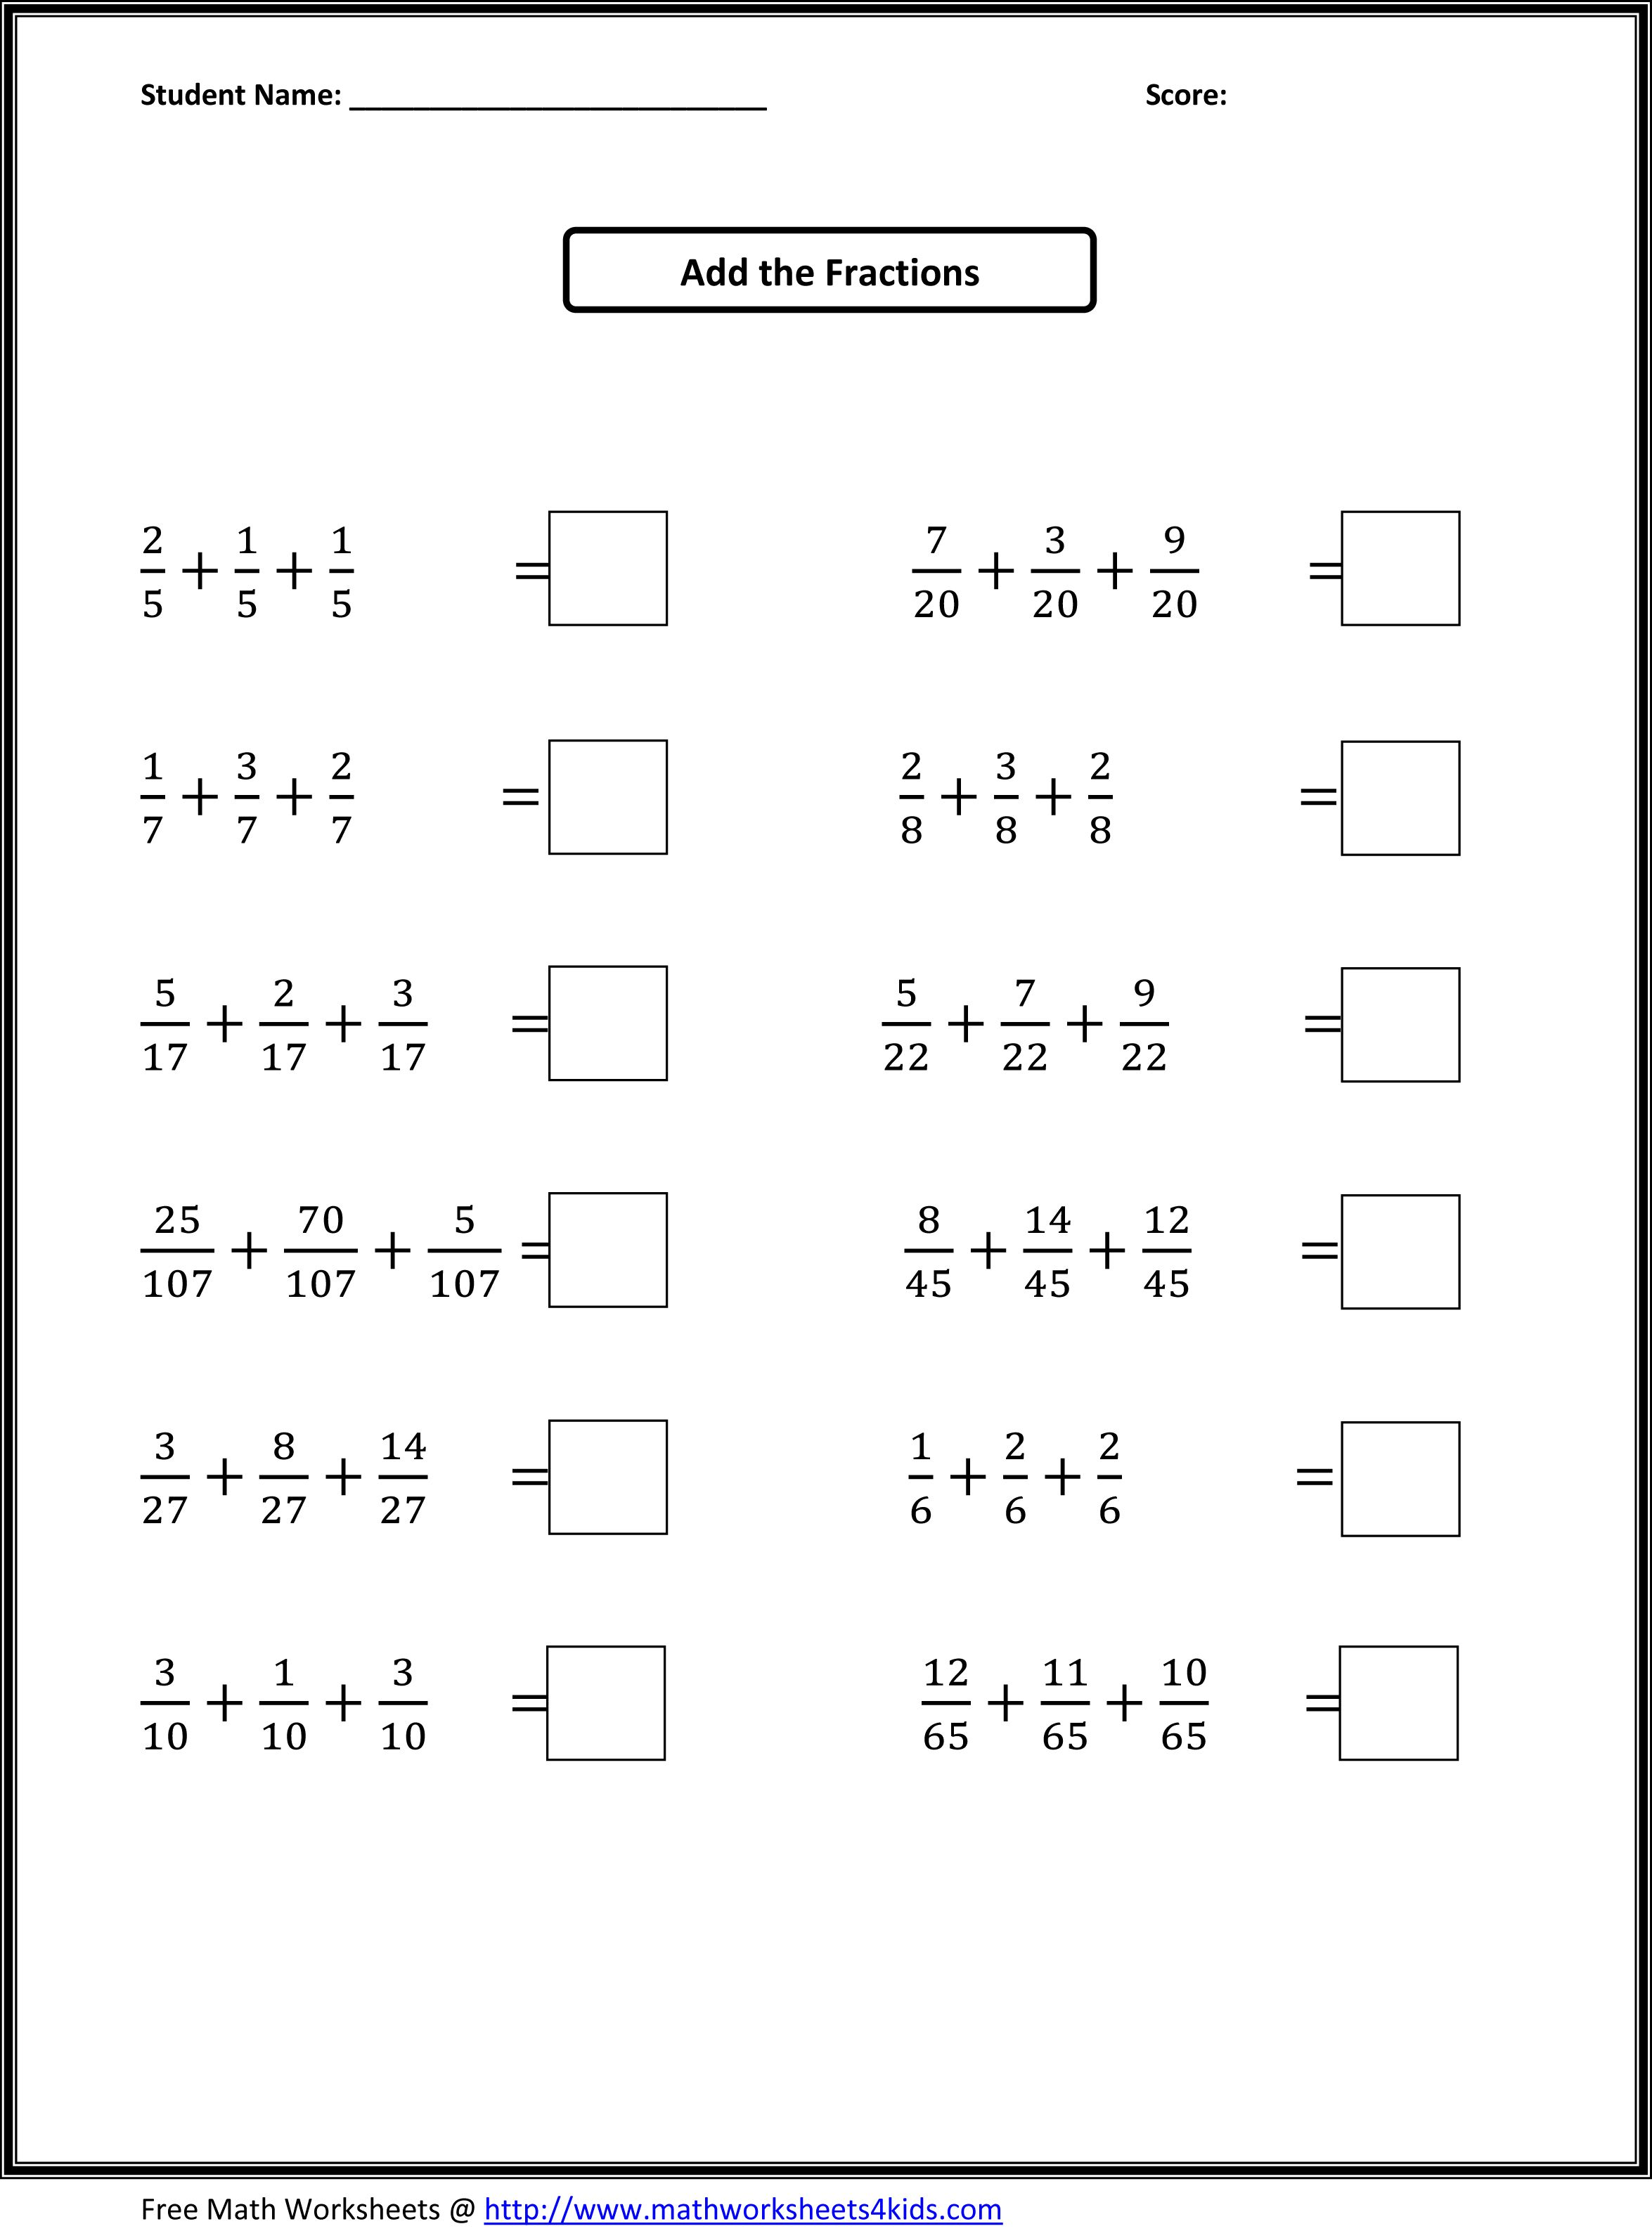 Worksheets 5th Grade Math Fraction Worksheets worksheets for all early ed grades topics of math math